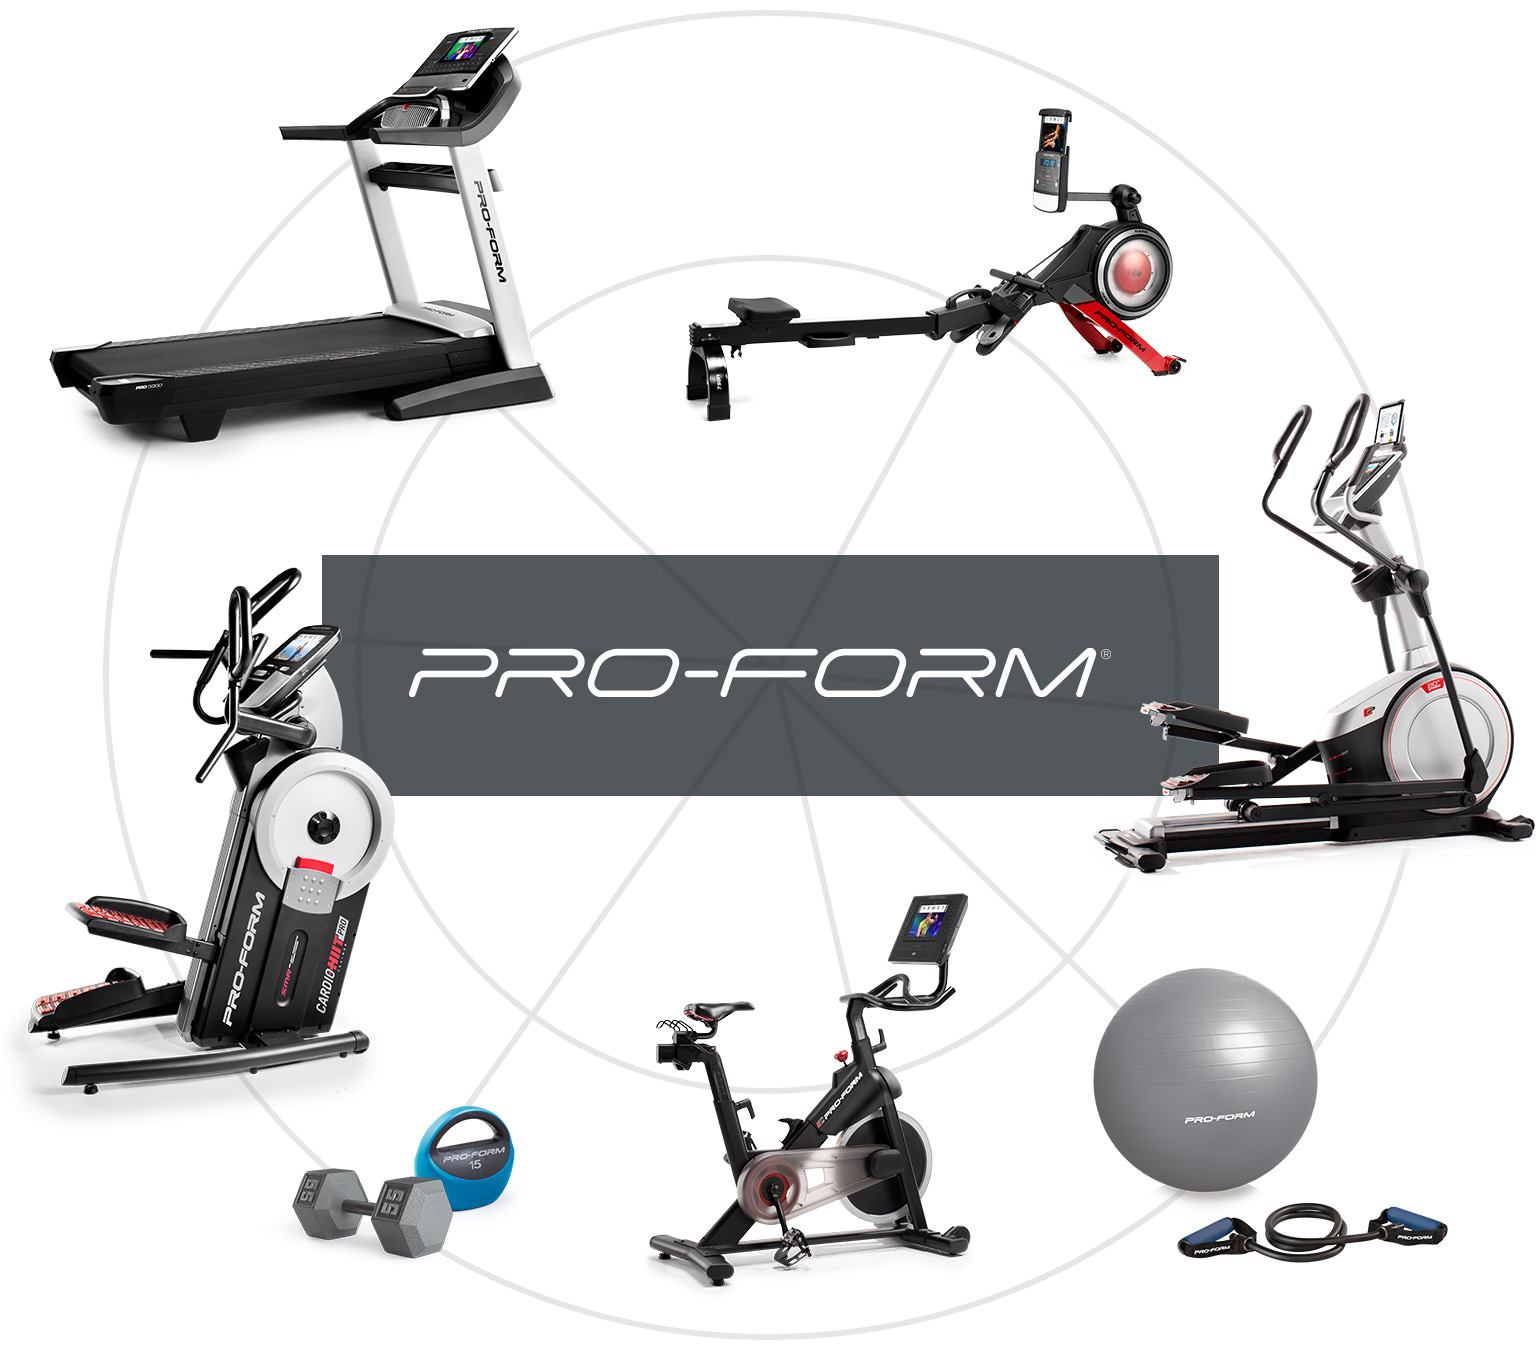 proform membership